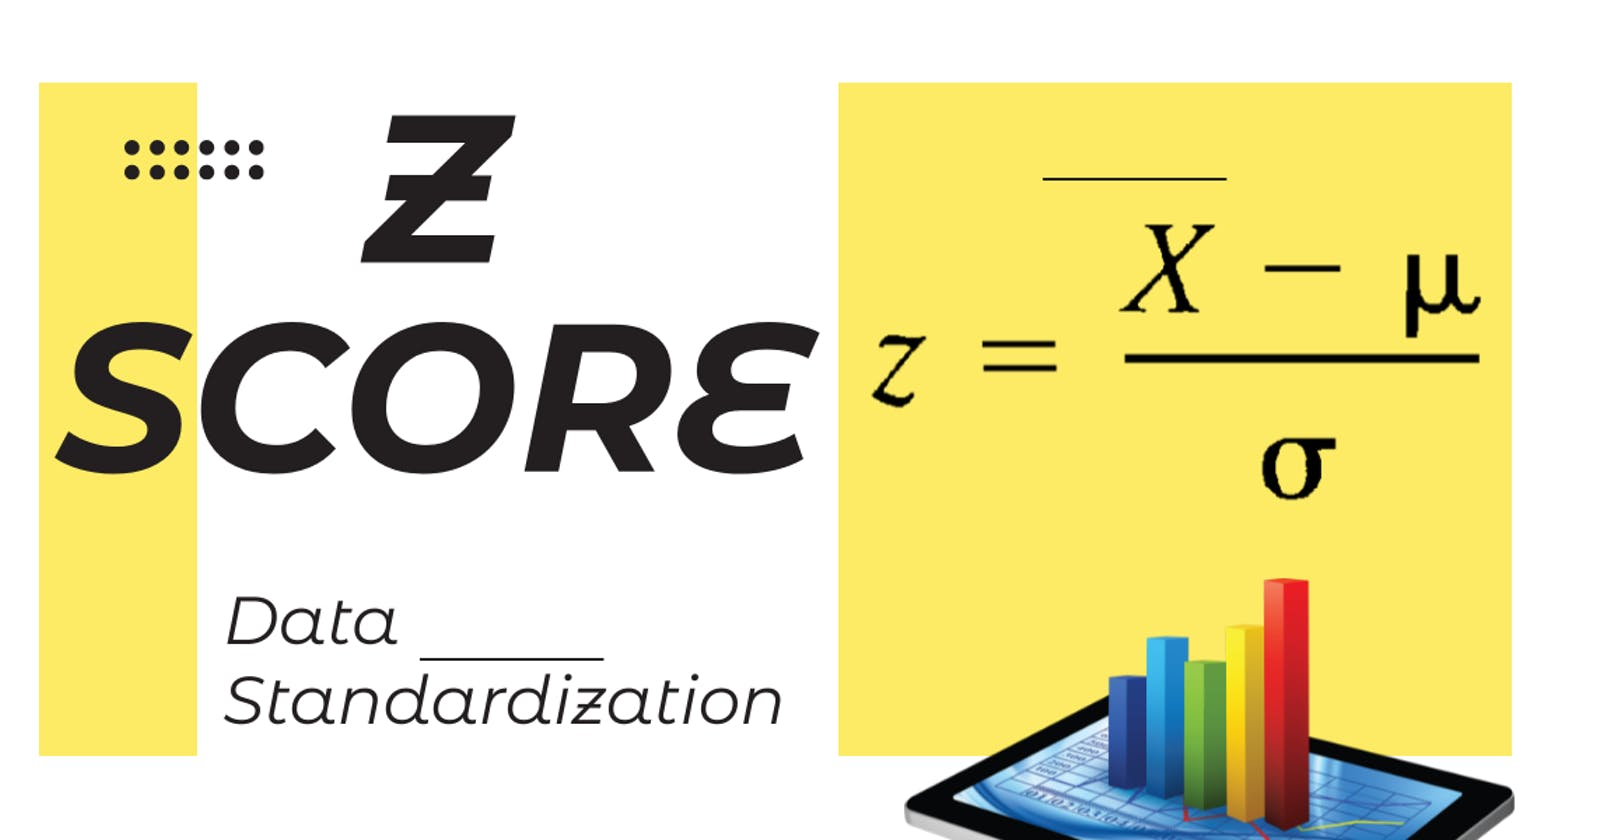 Z-score: The intuitive way